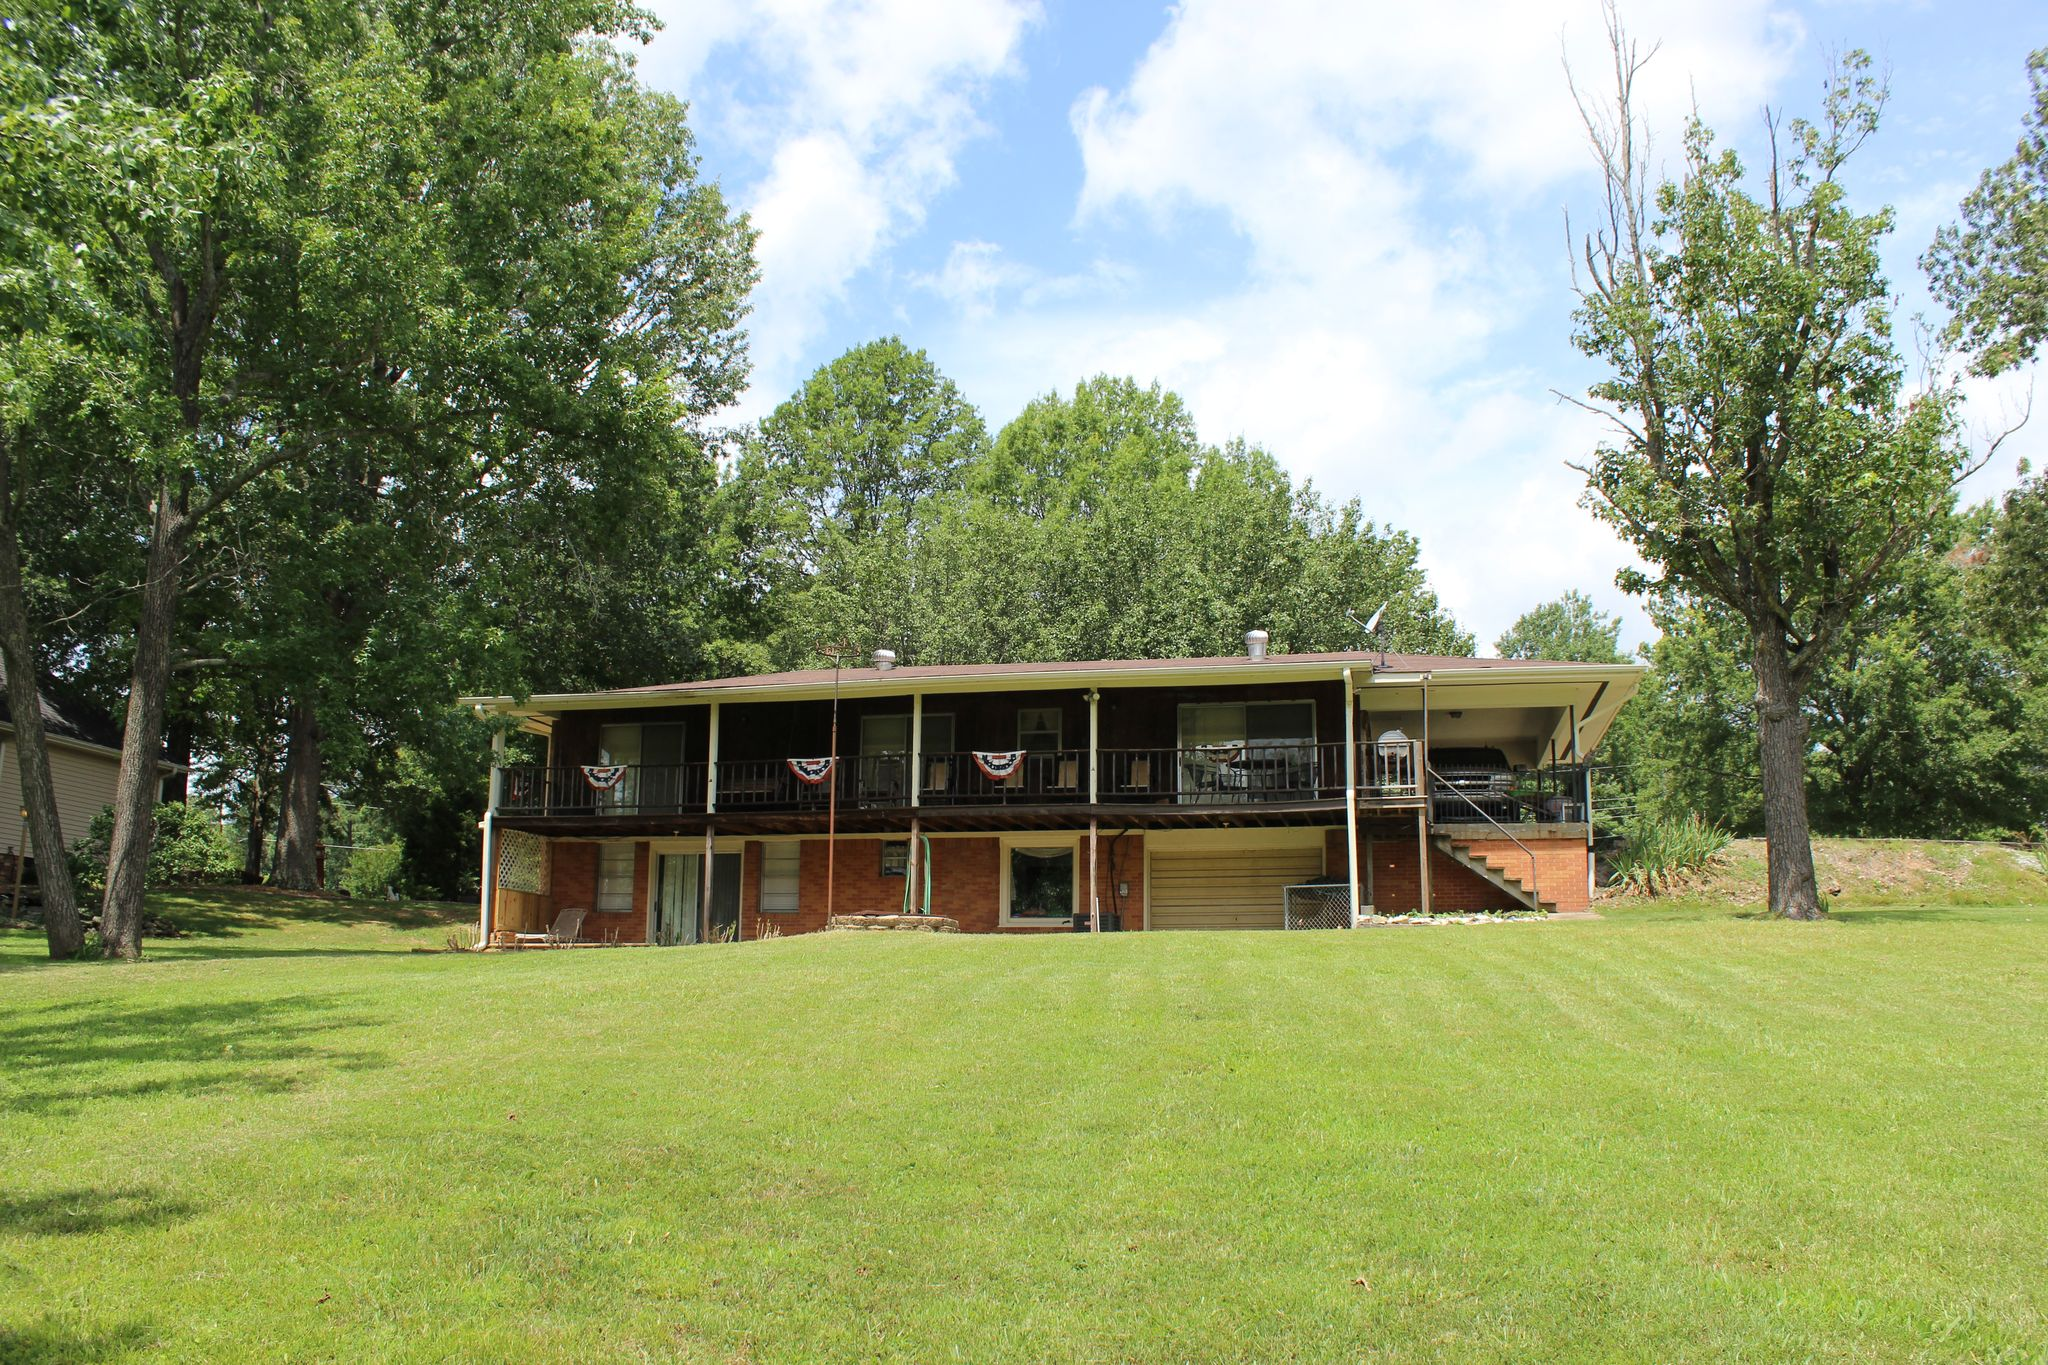 583 holiday acres dr for sale springville tn